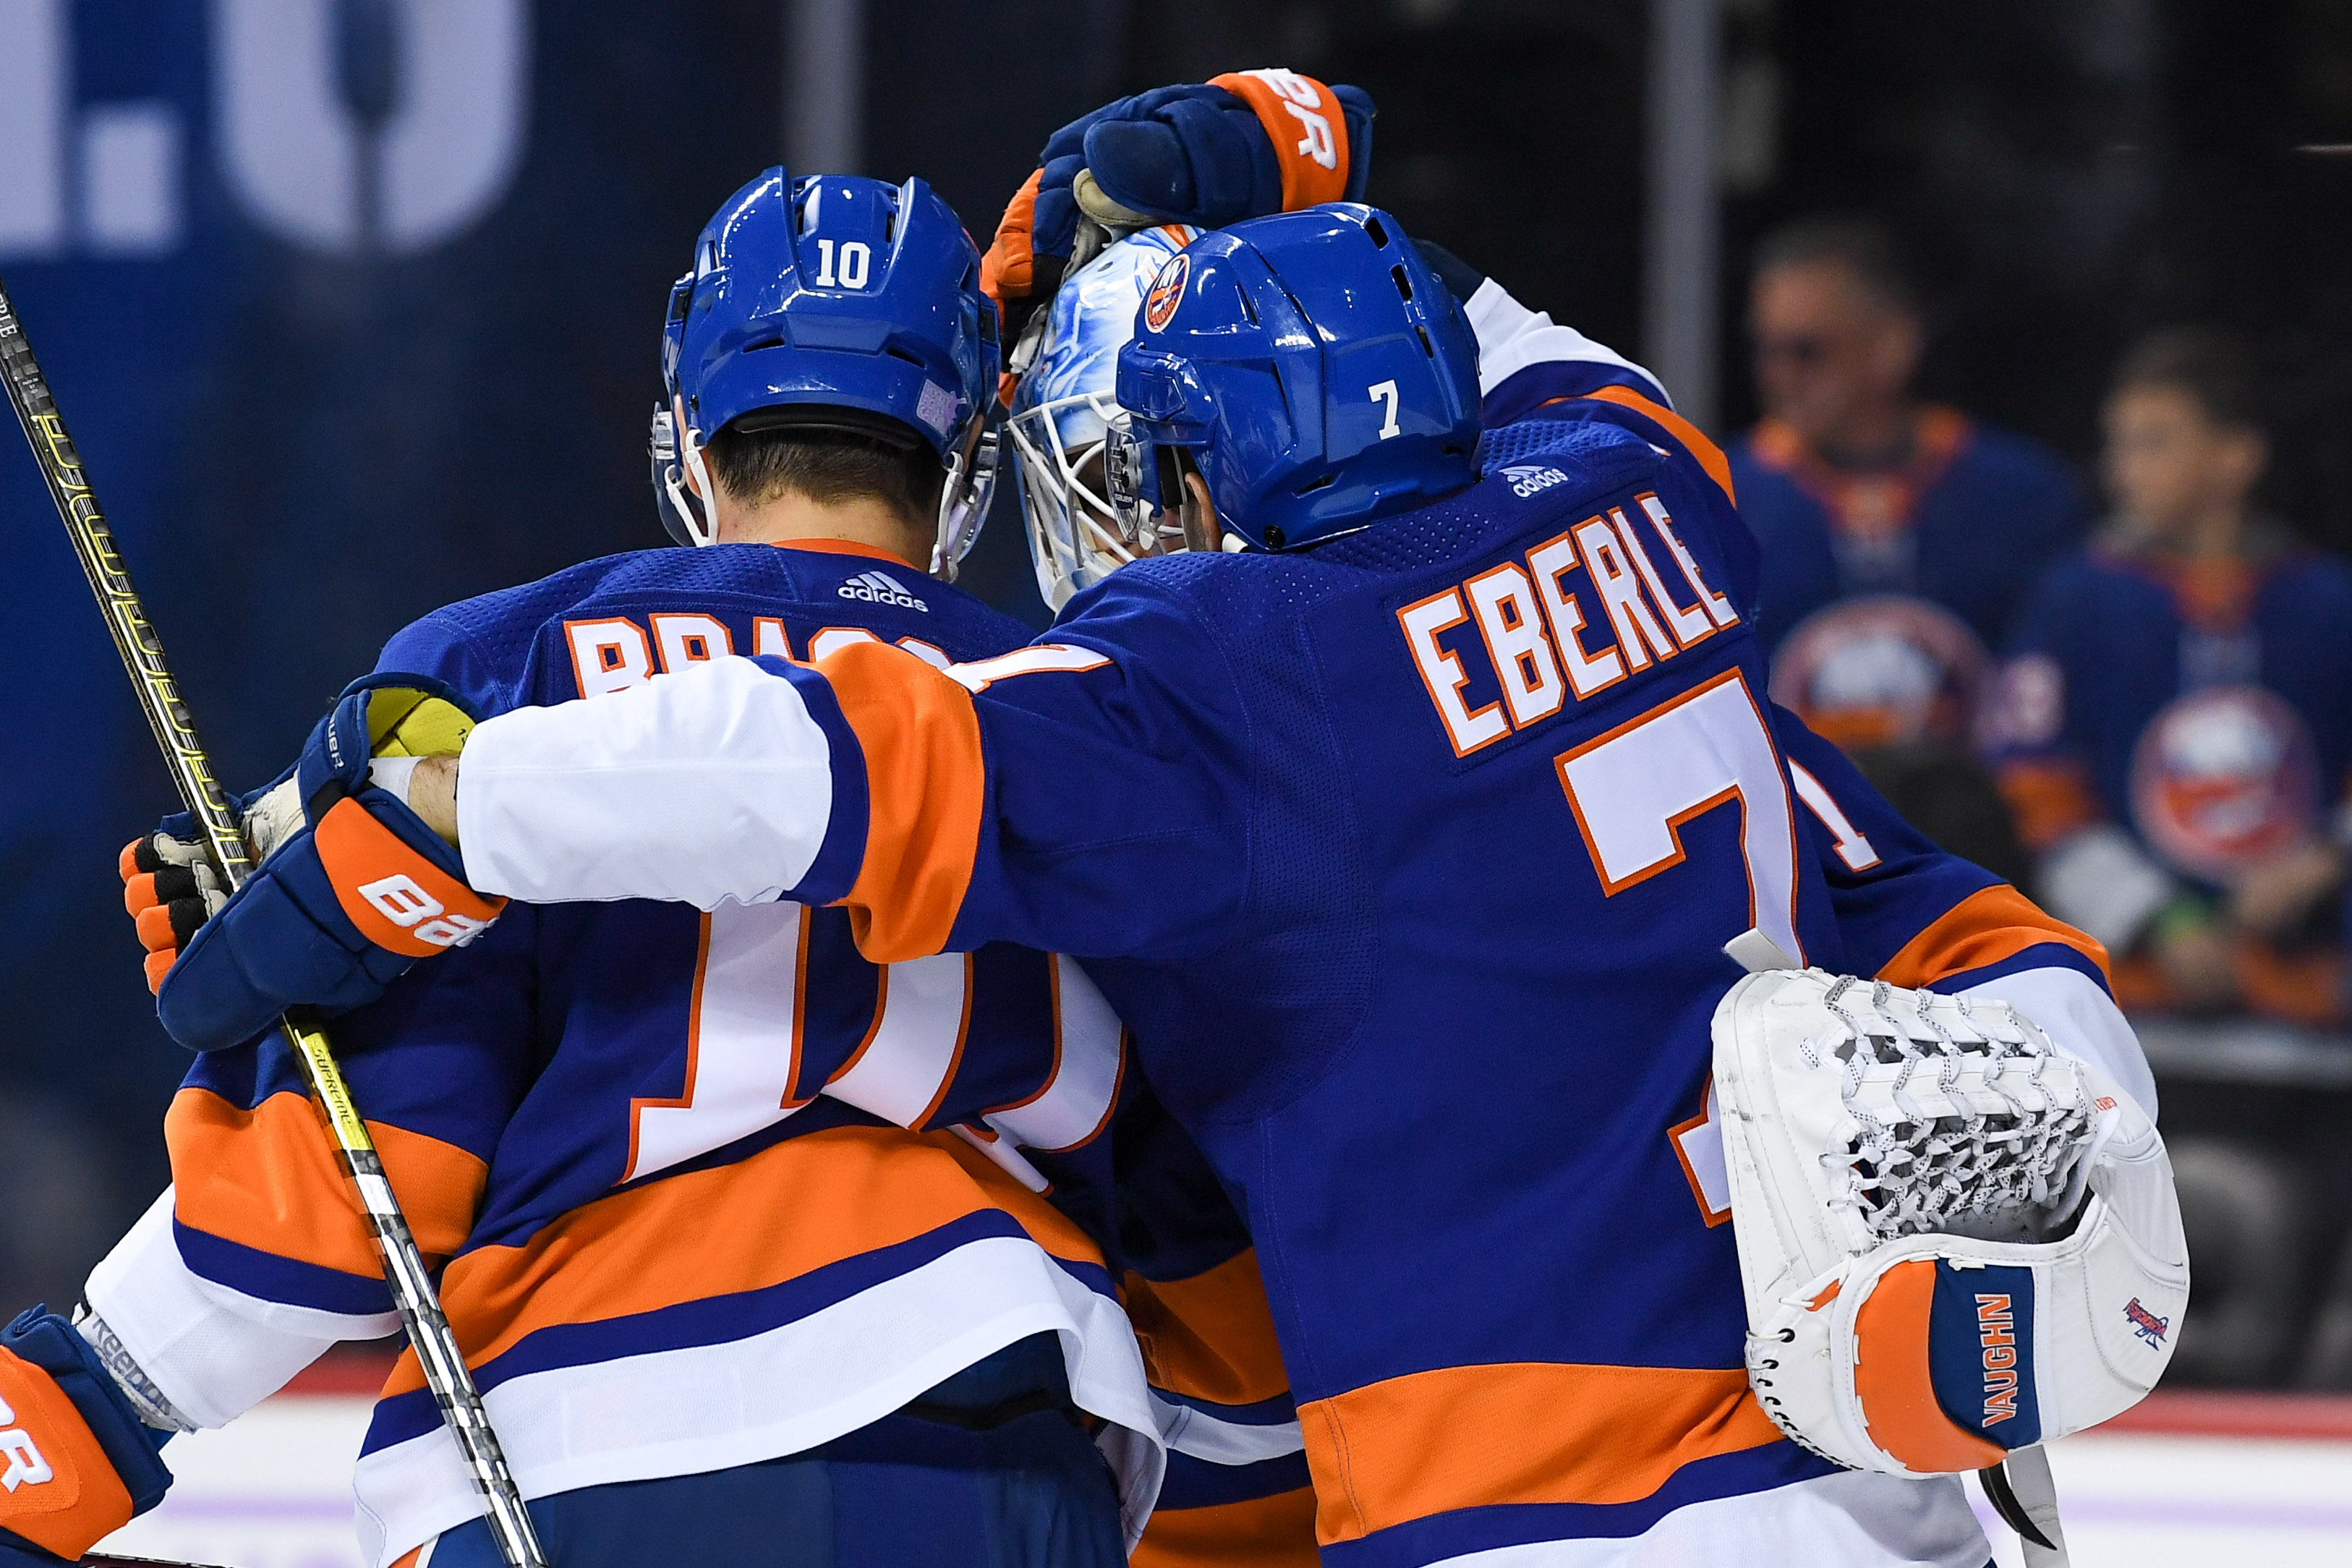 Nov 9, 2019; Brooklyn, NY, USA; New York Islanders center Jordan Eberle (7) and center Derick Brassard (10) congratulate goaltender Thomas Greiss (1) after a 2-1 victory over the Florida Panthers at Barclays Center. Mandatory Credit: Dennis Schneidler-USA TODAY Sports